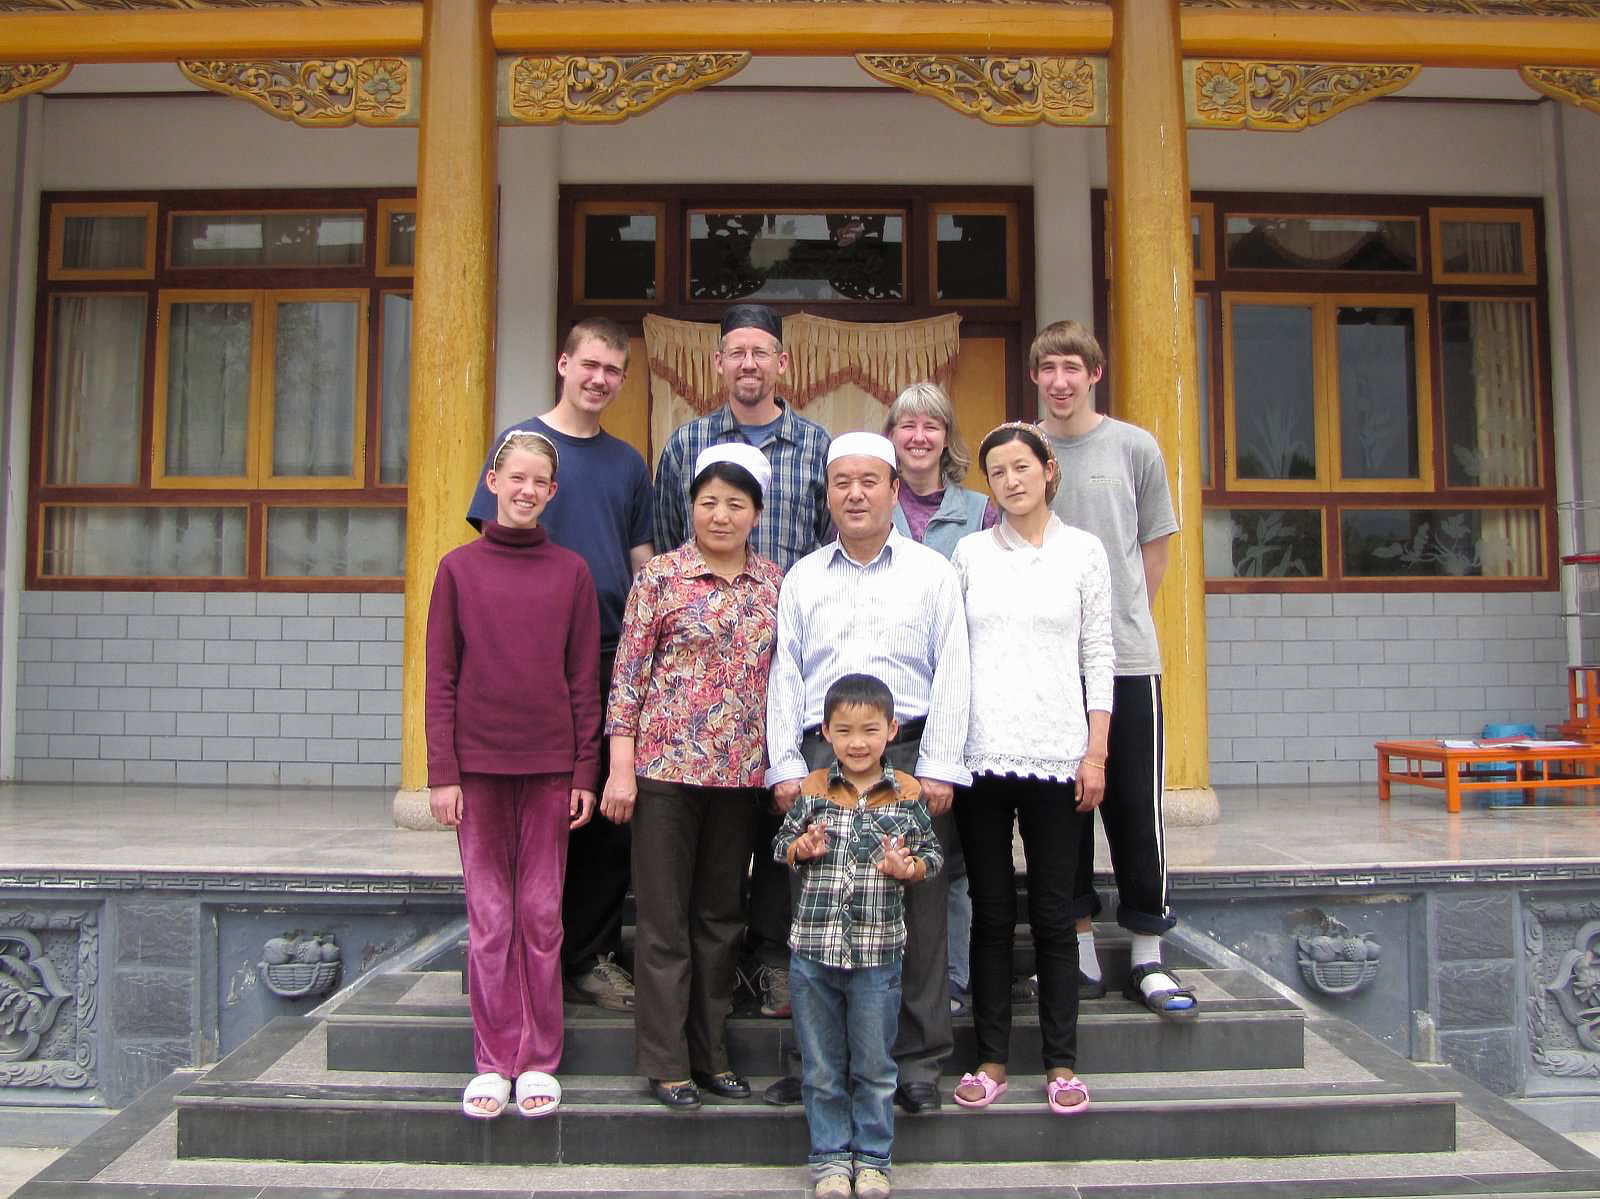 Jodie and her family with their Chinese Muslim host family in the village.